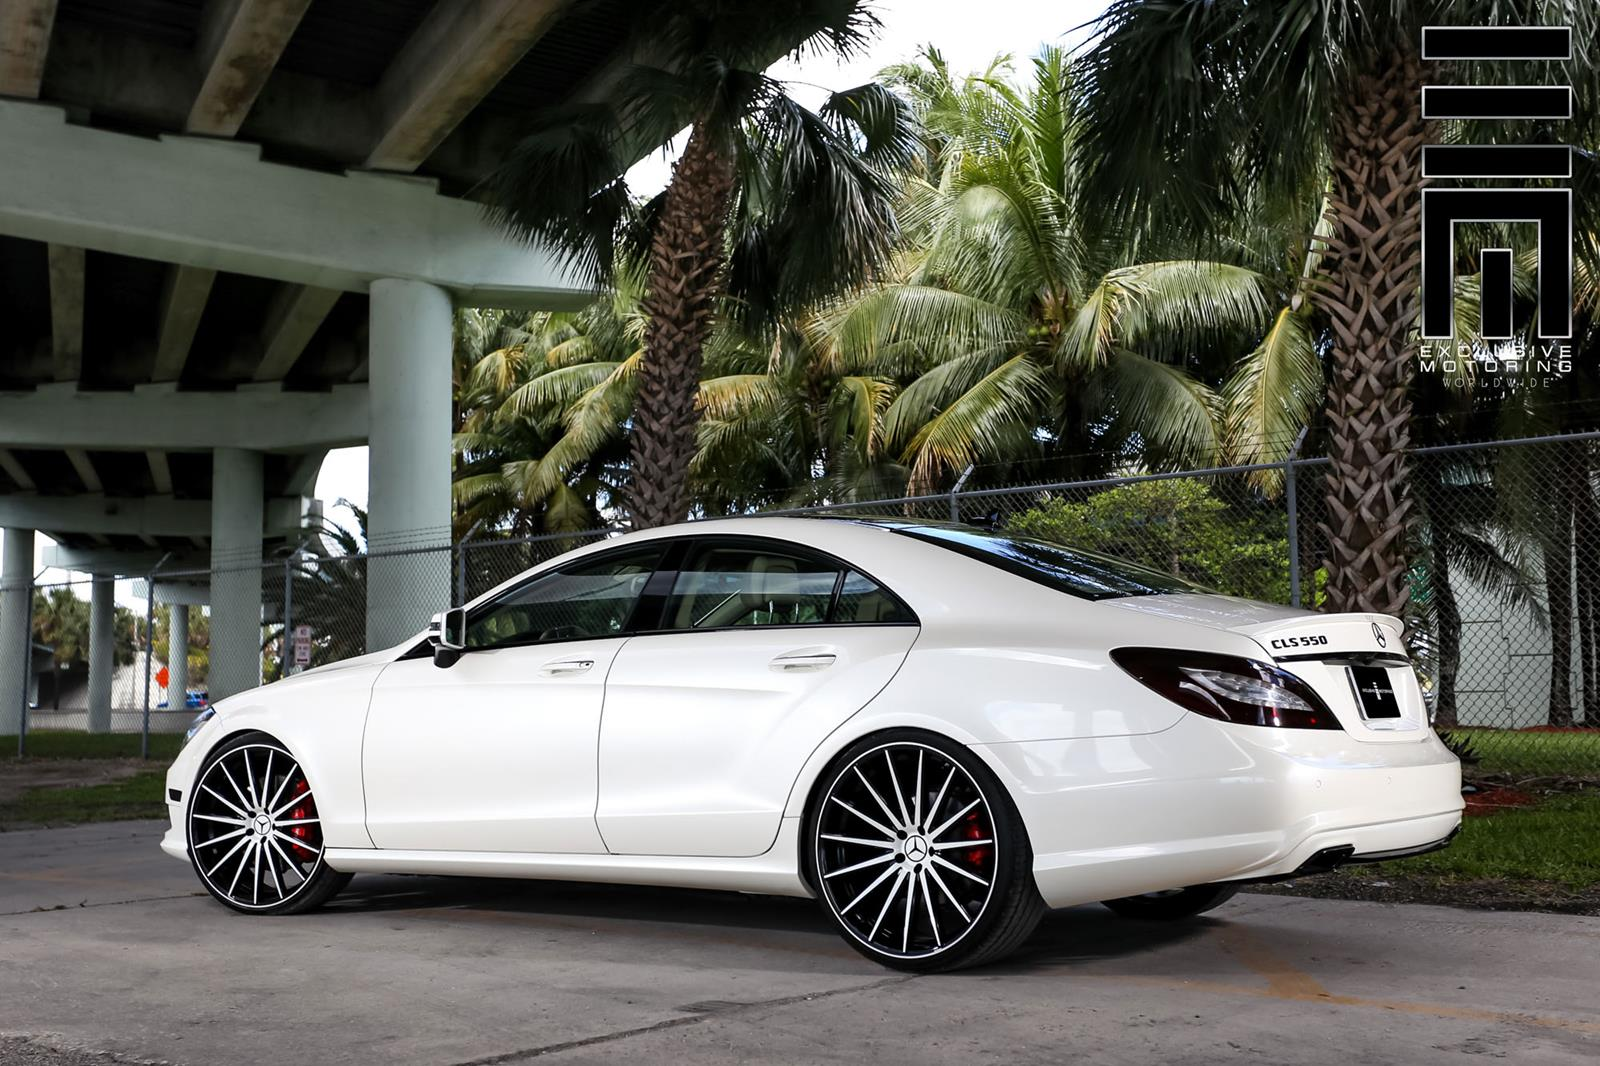 Mercedes Benz W218 Cls550 White On Vossen Vfs2 Wheels